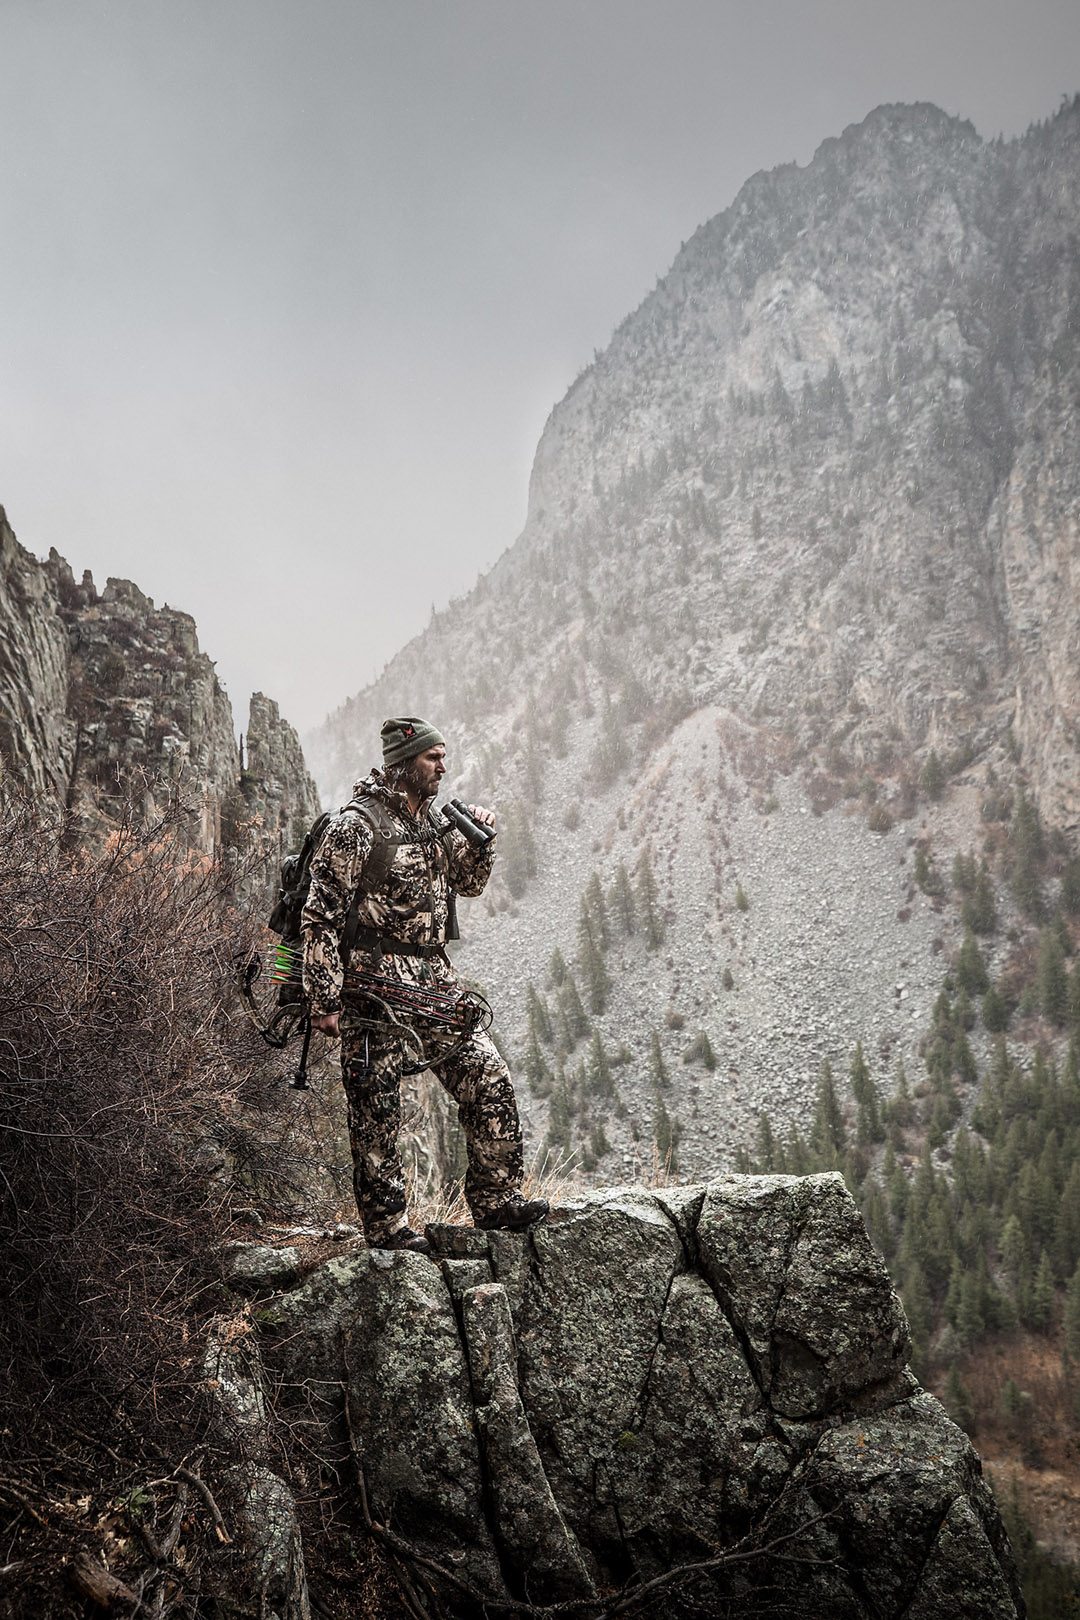 This Photograph Captures a Hunter Scouting an Elk Herd from a High Rocky Perch. In the White River National Forest, Huge Elk Herds Gather Near the Rivers.